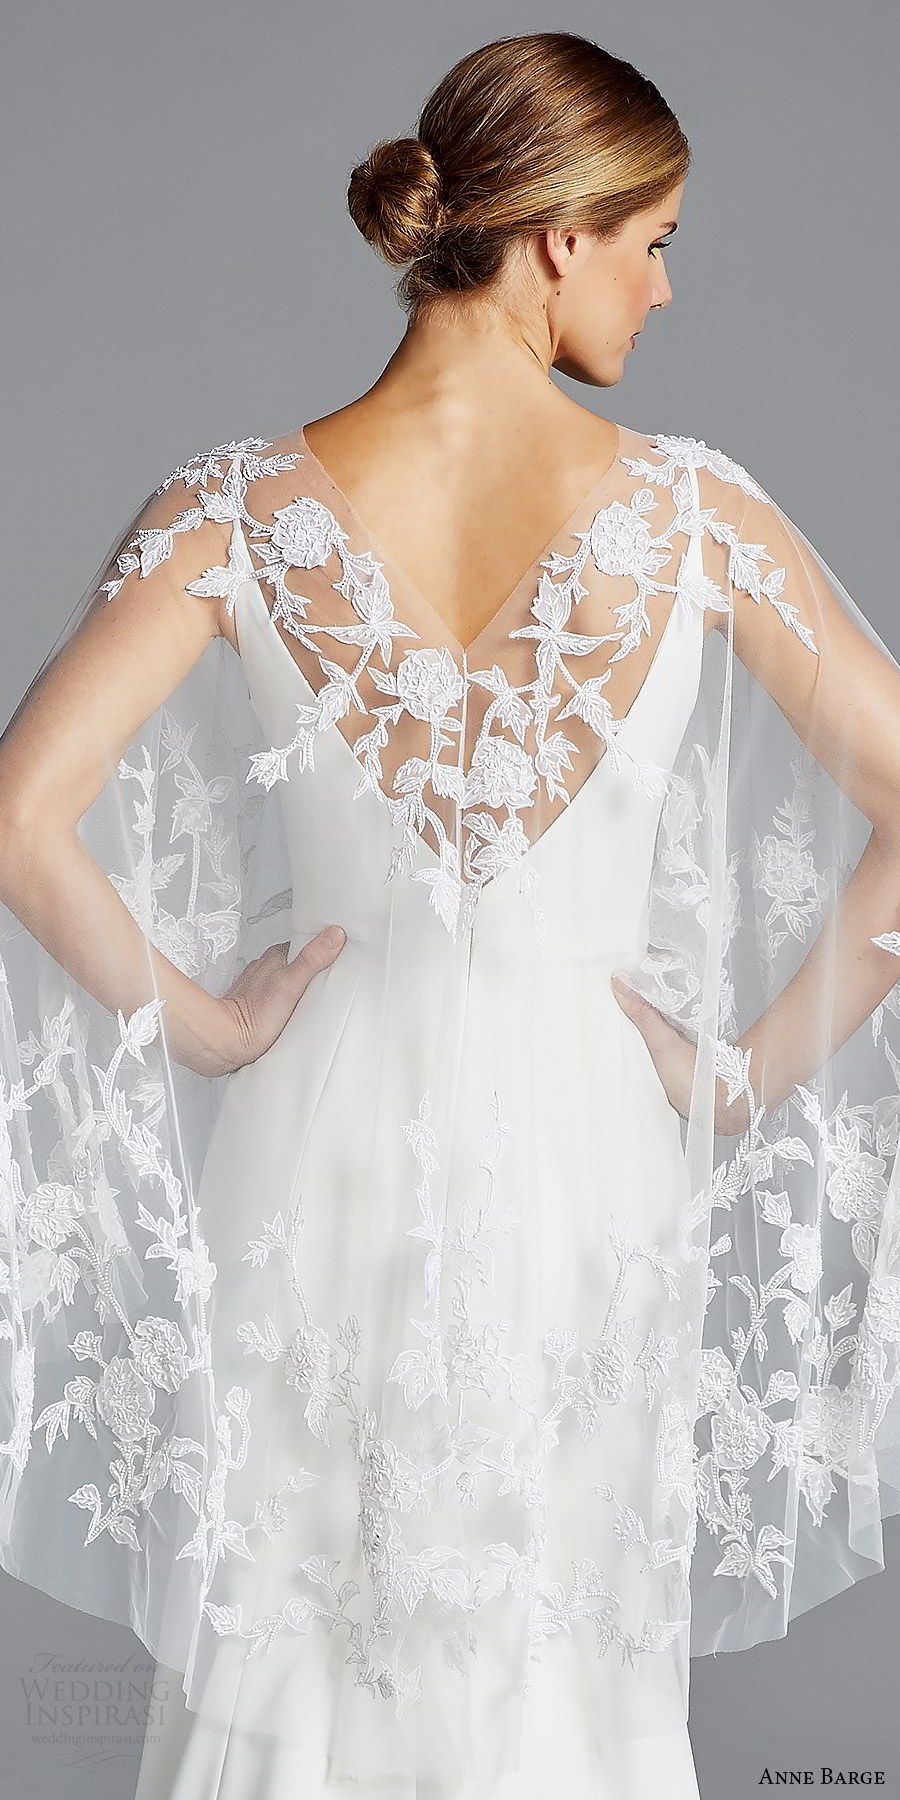 Anne barge spring wedding dresses in f gowns